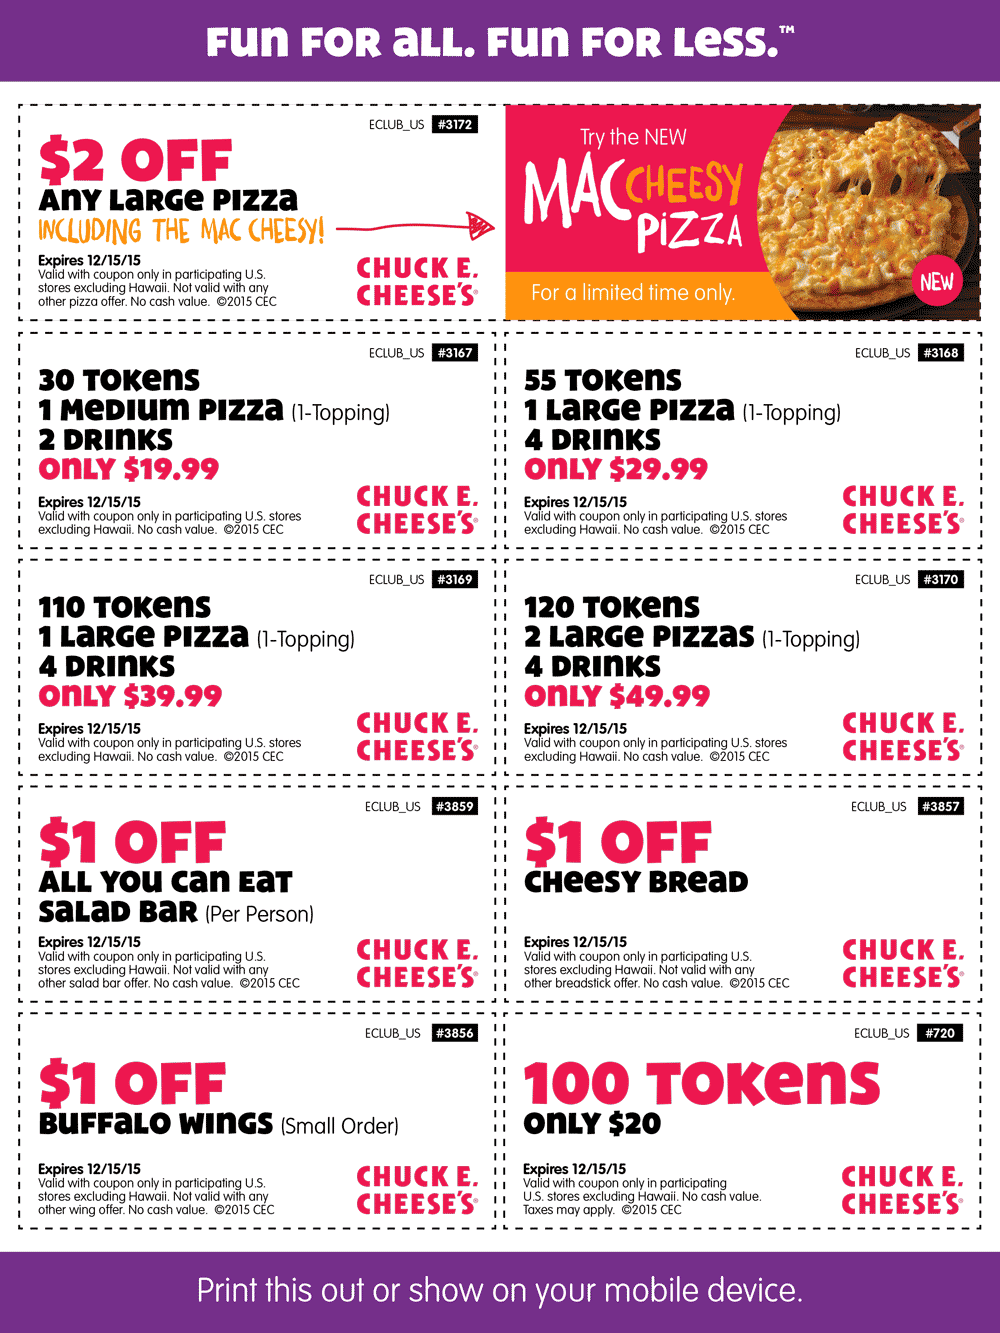 Chuck E. Cheese Coupon July 2018 30 tokens + pizza + drinks or 100 tokens for $20 & more at Chuck E. Cheese